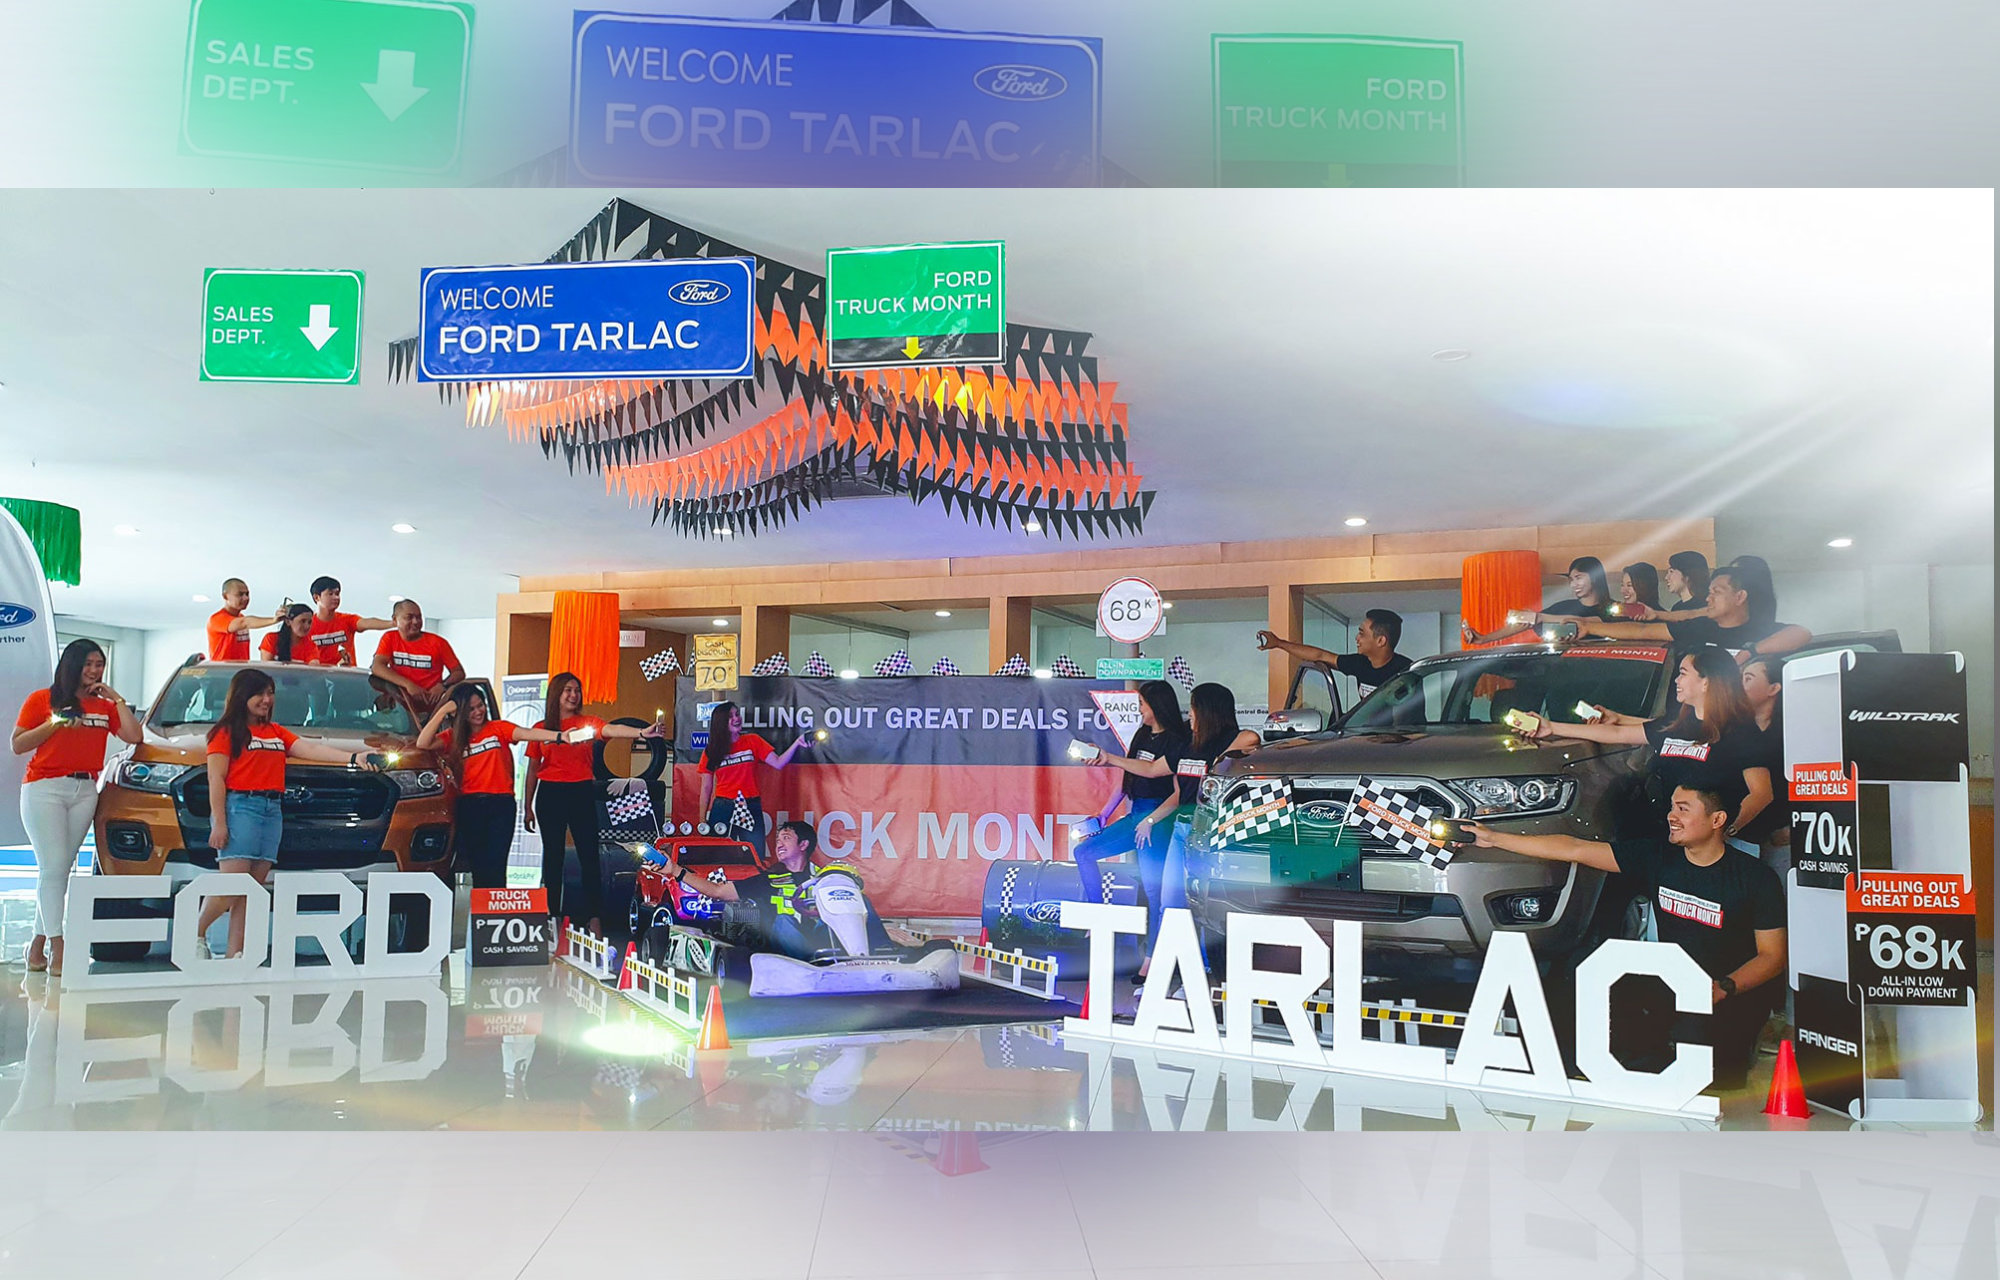 ford tarlac kart racer theme for the  ford truck month event